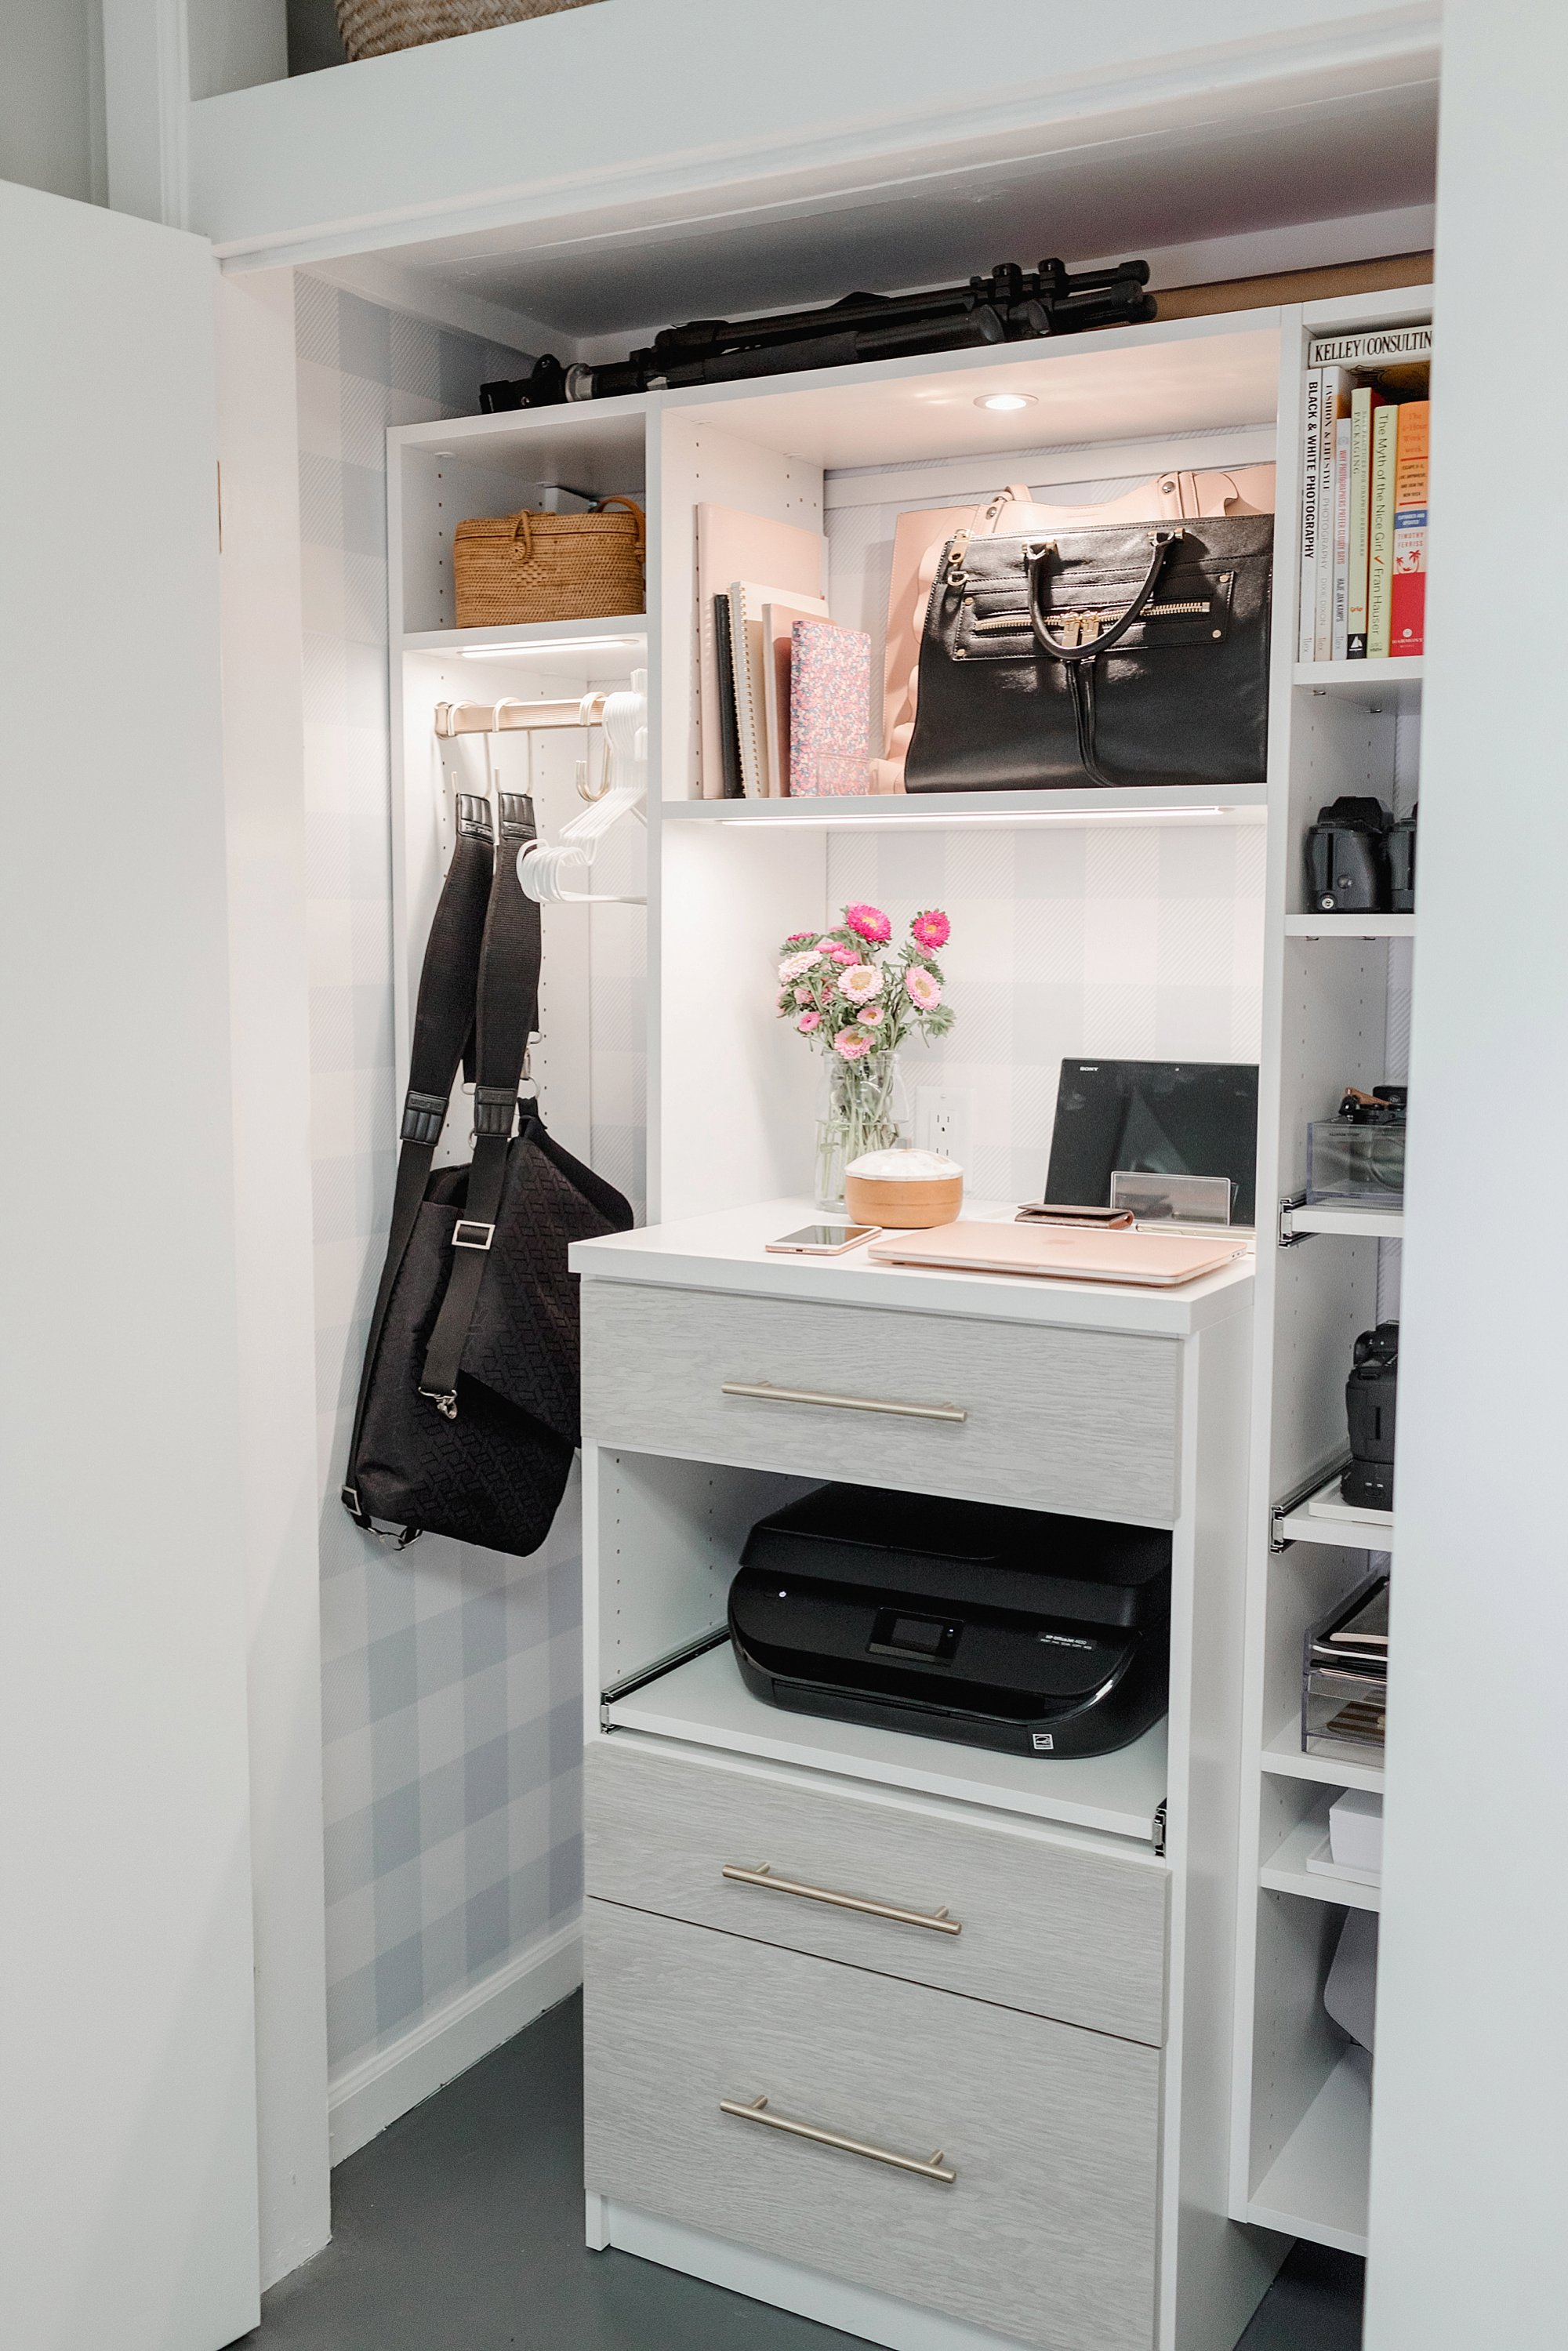 office-closet-diana-elizabeth-blog-california-closet-lens-drawer-organization-lenses-photographer-studio-blogger-5553a